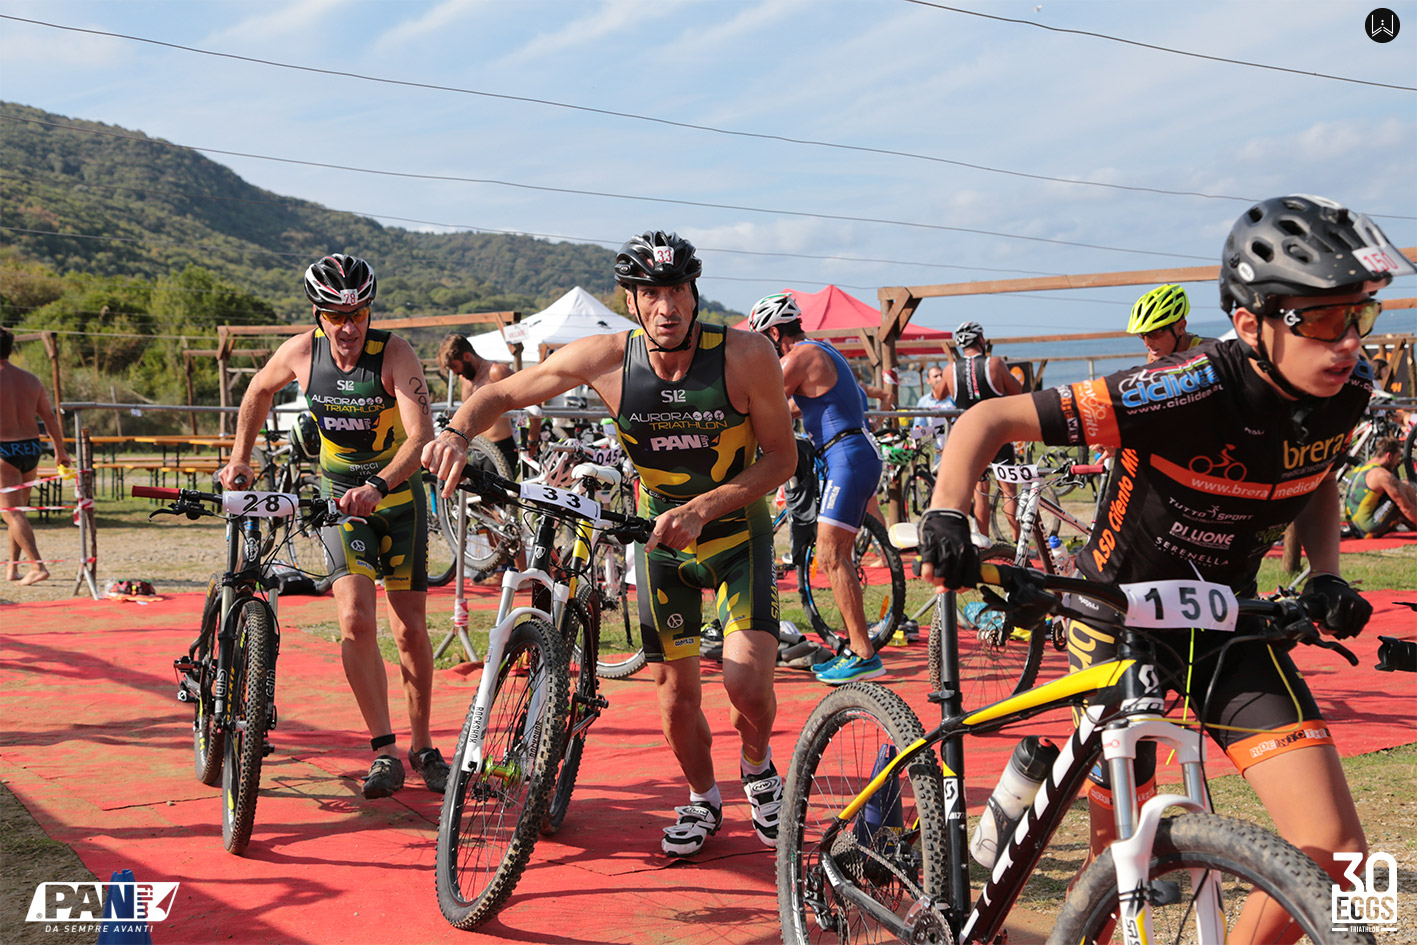 Partenza mtb - 30EGGS Triathlon Cross Super Sprint